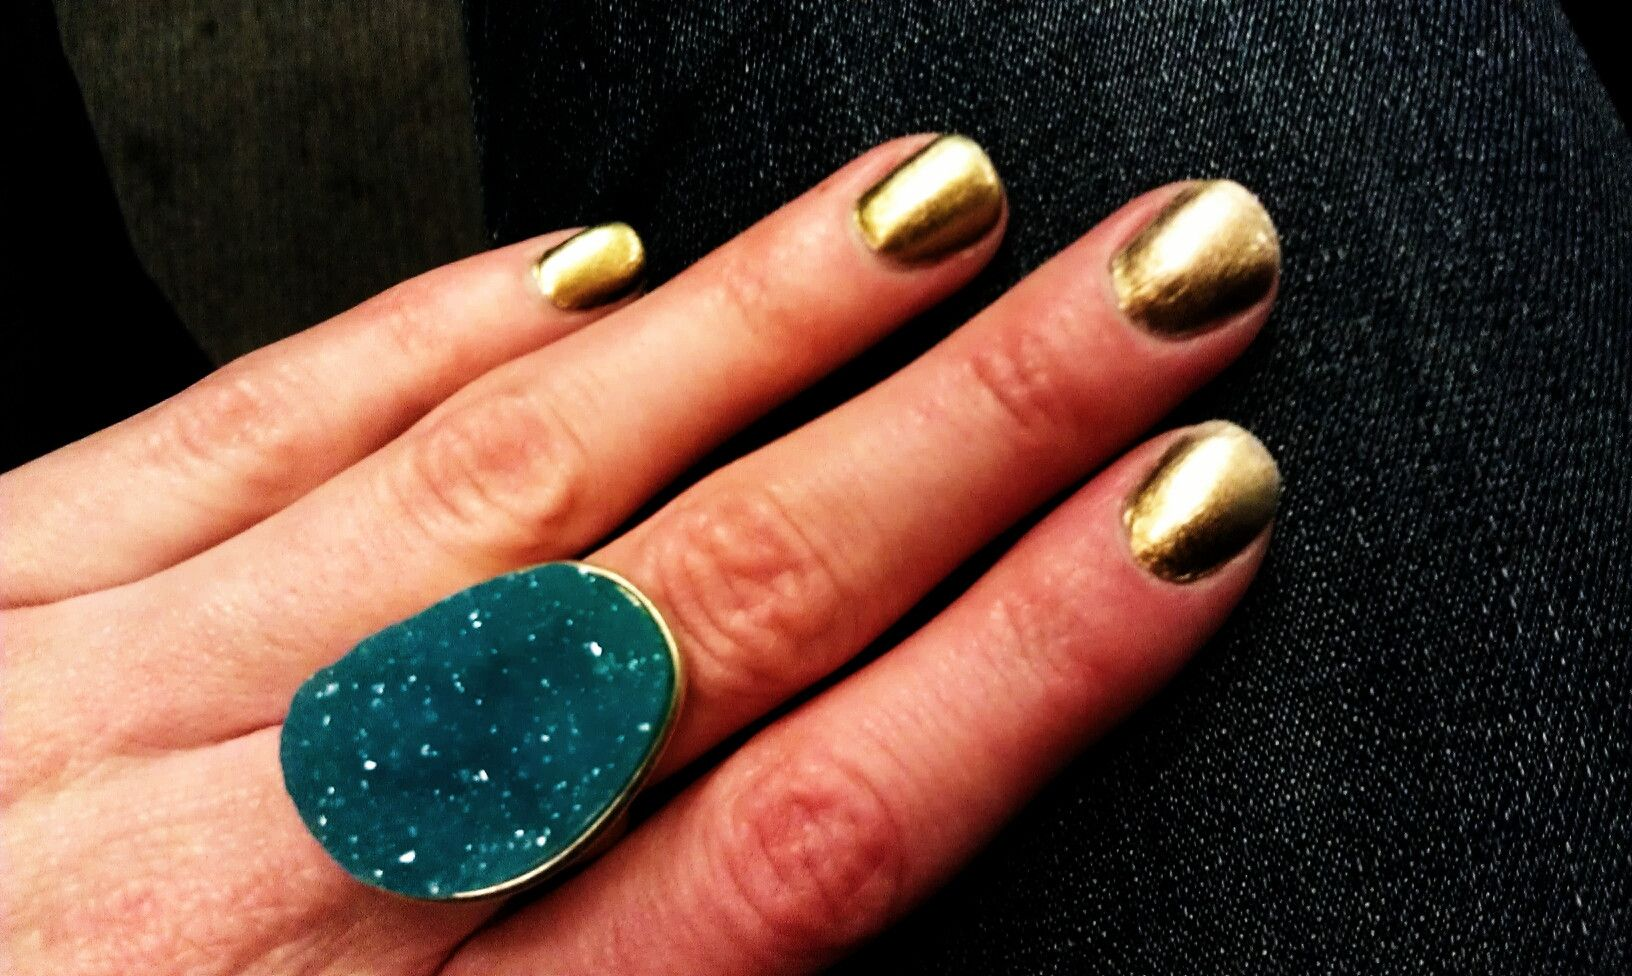 Love the turquoise ring paired with peridot chanel polish.